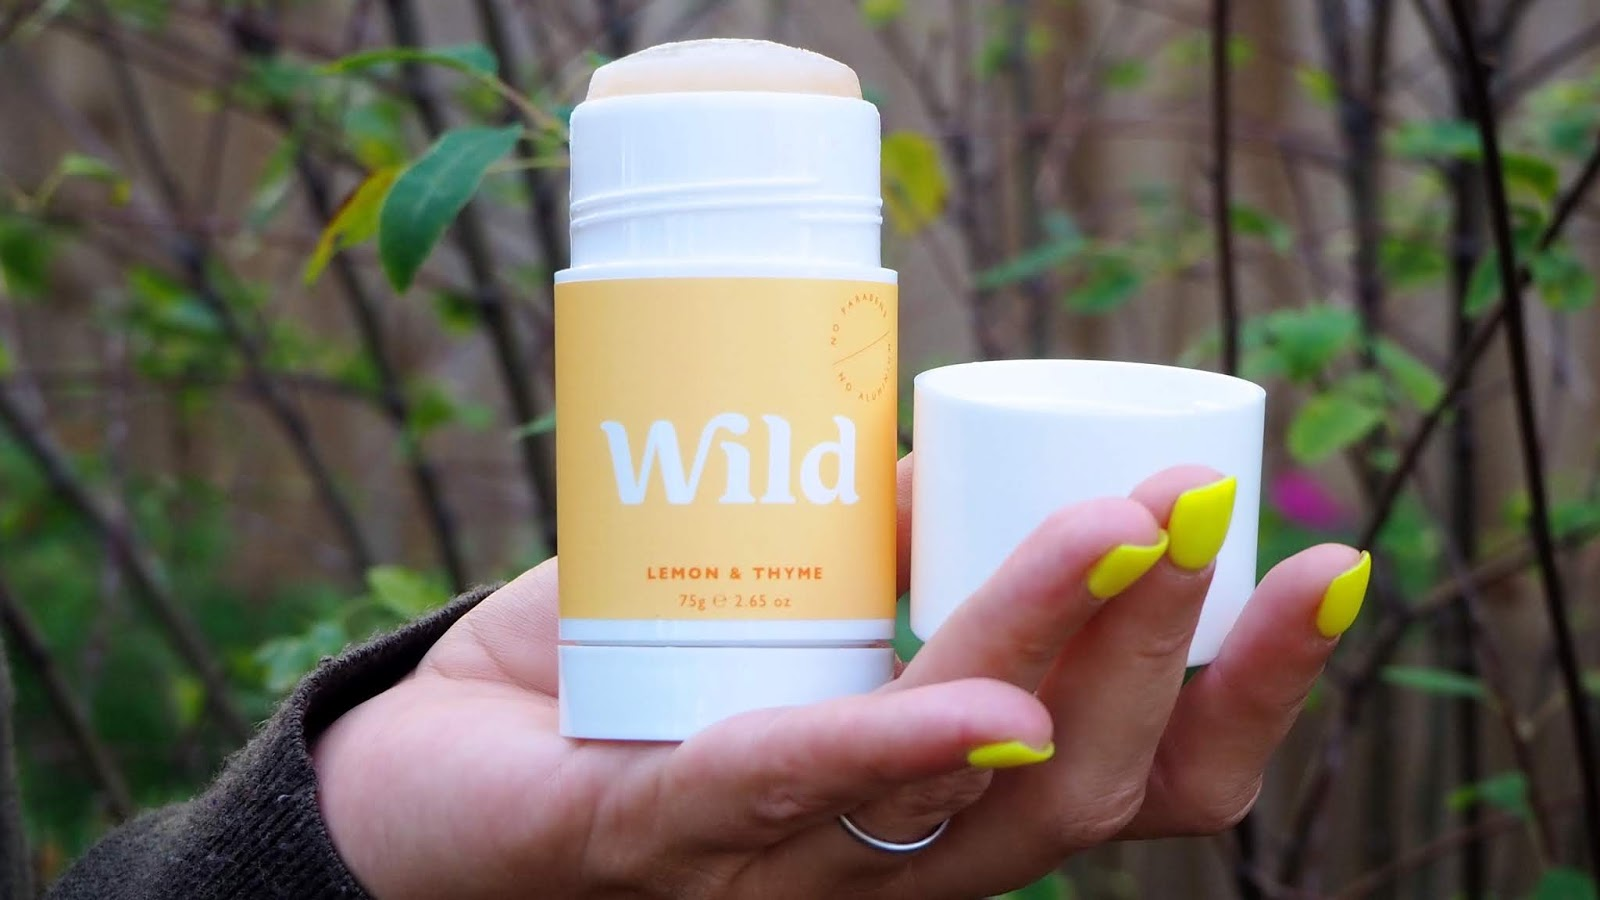 Lemon & Thyme Natural Deodorant